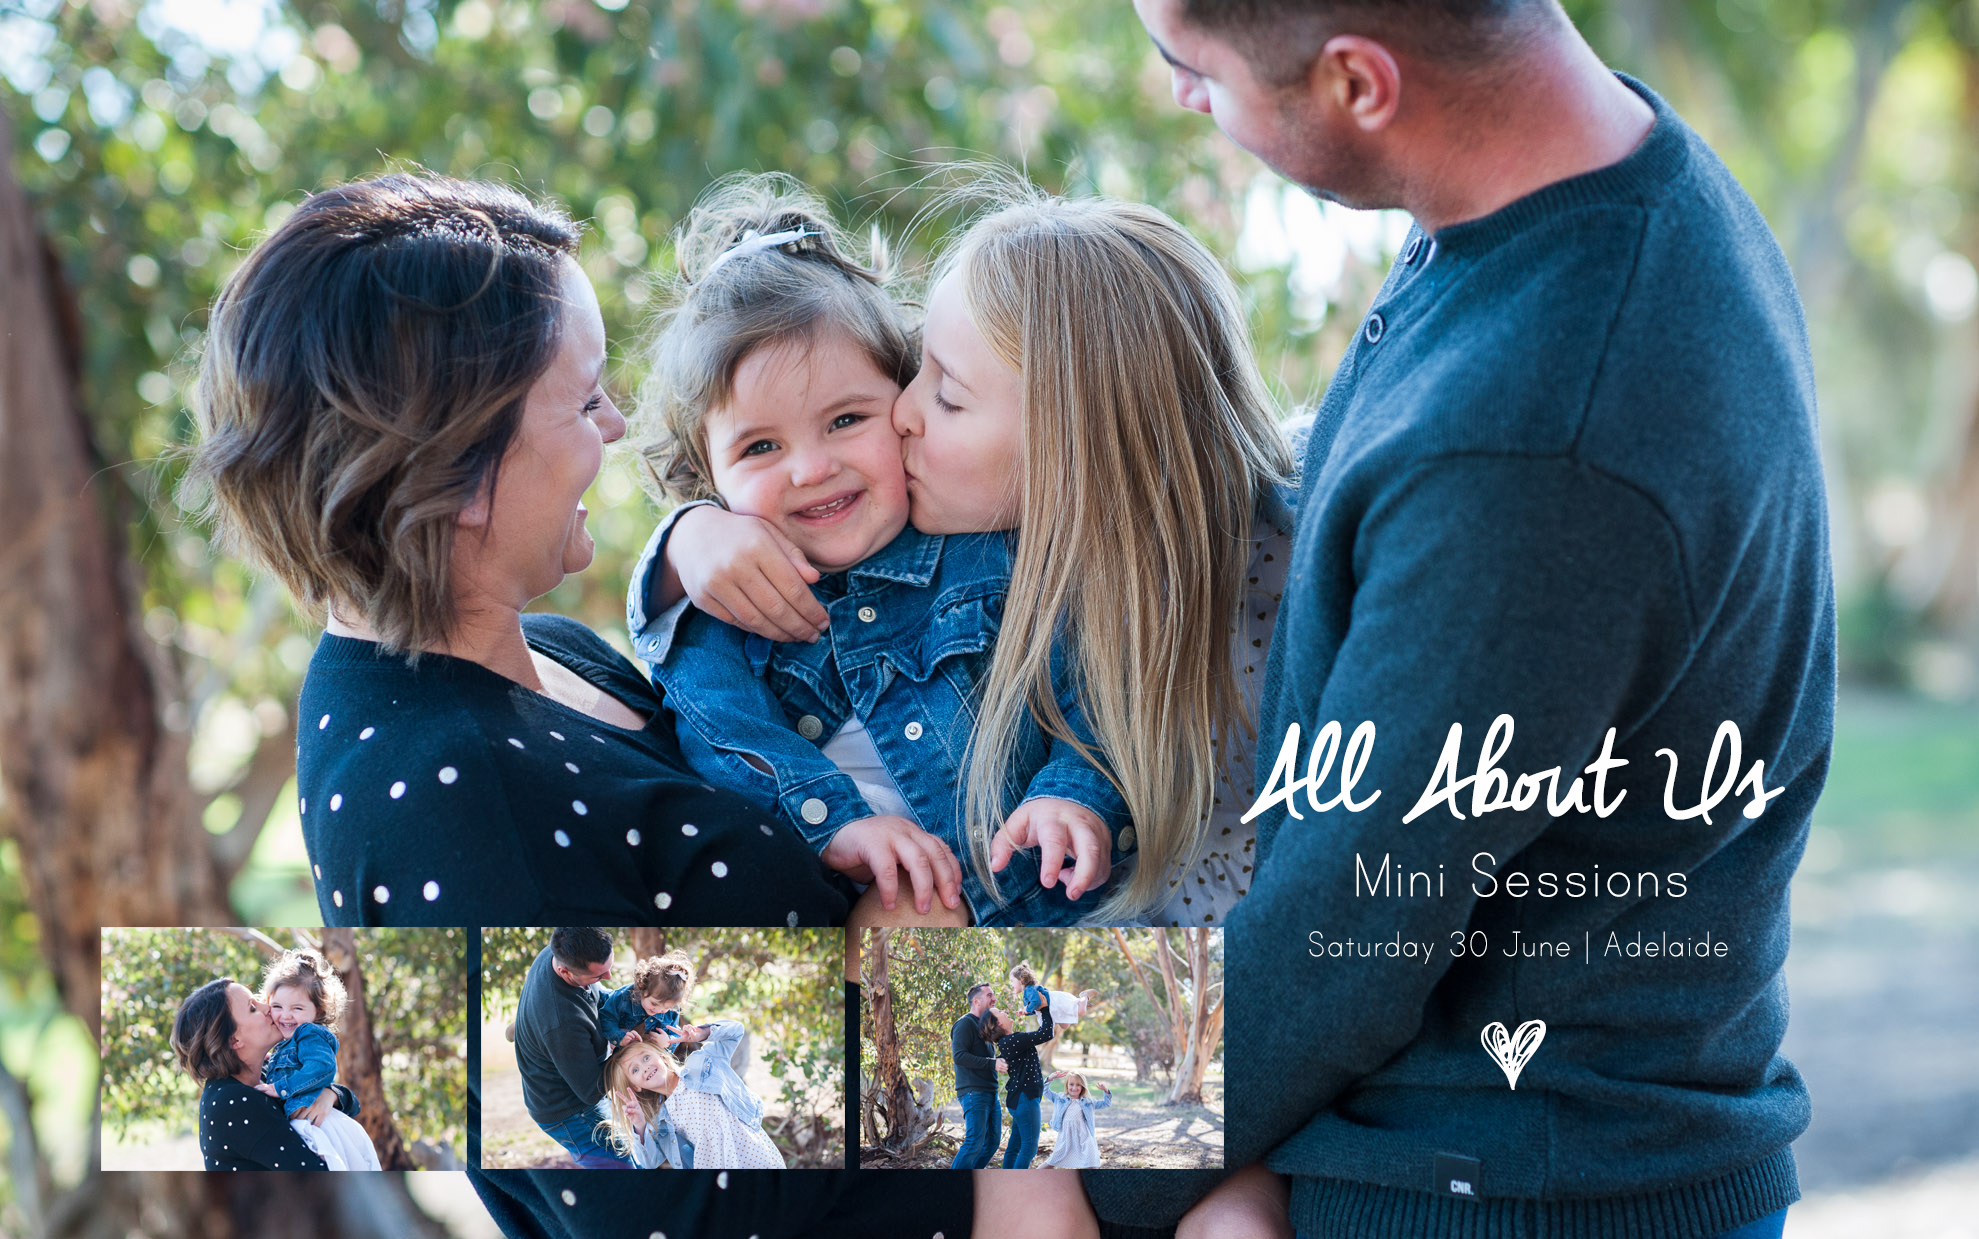 All-About-Us-Mini-Sessions-ADELAIDE-FB-Promo